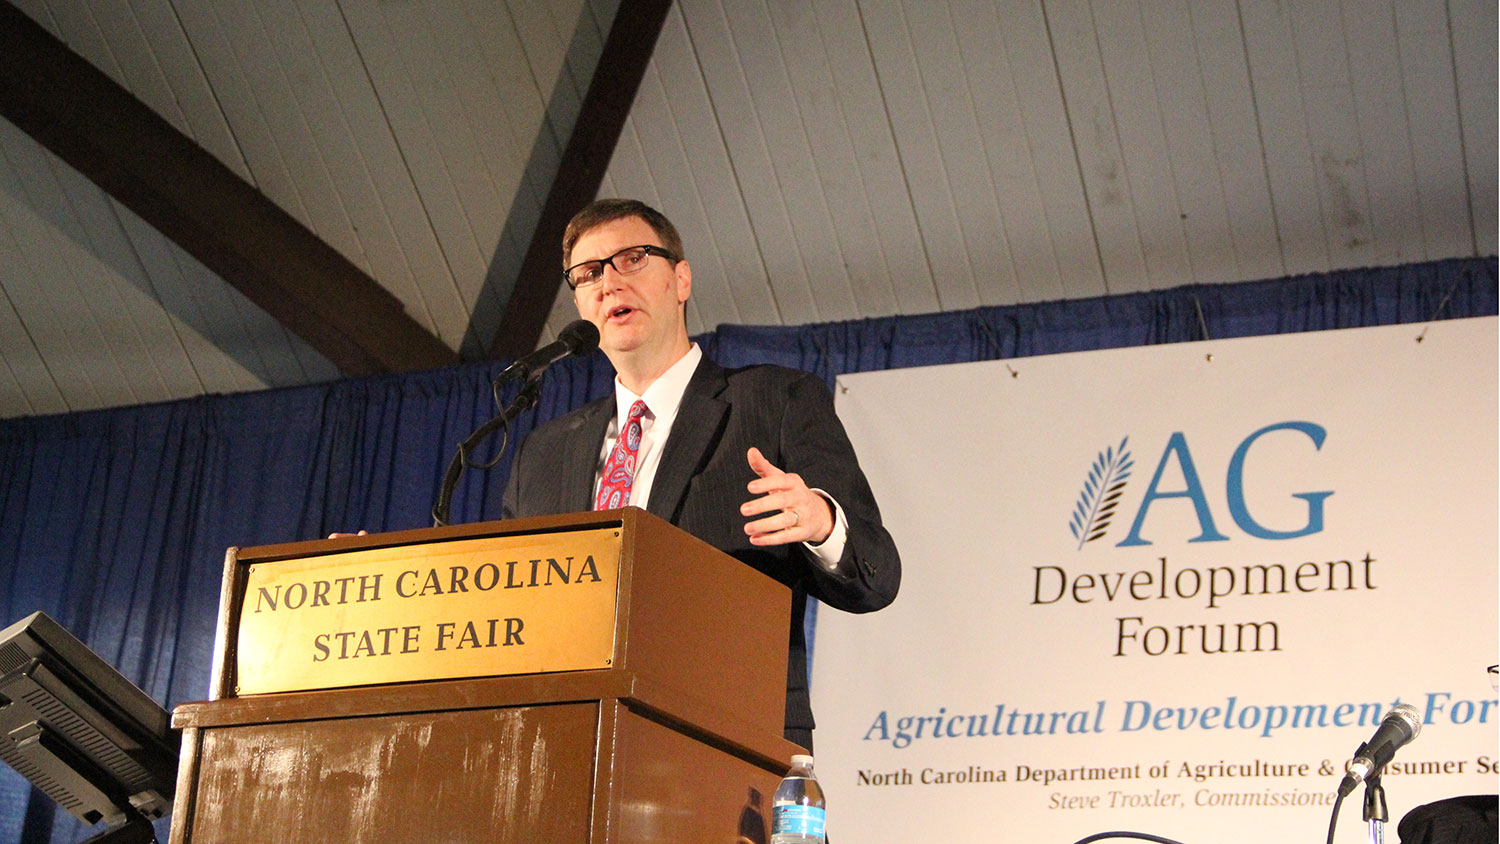 Ray Starling speaking at Ag Development Forum